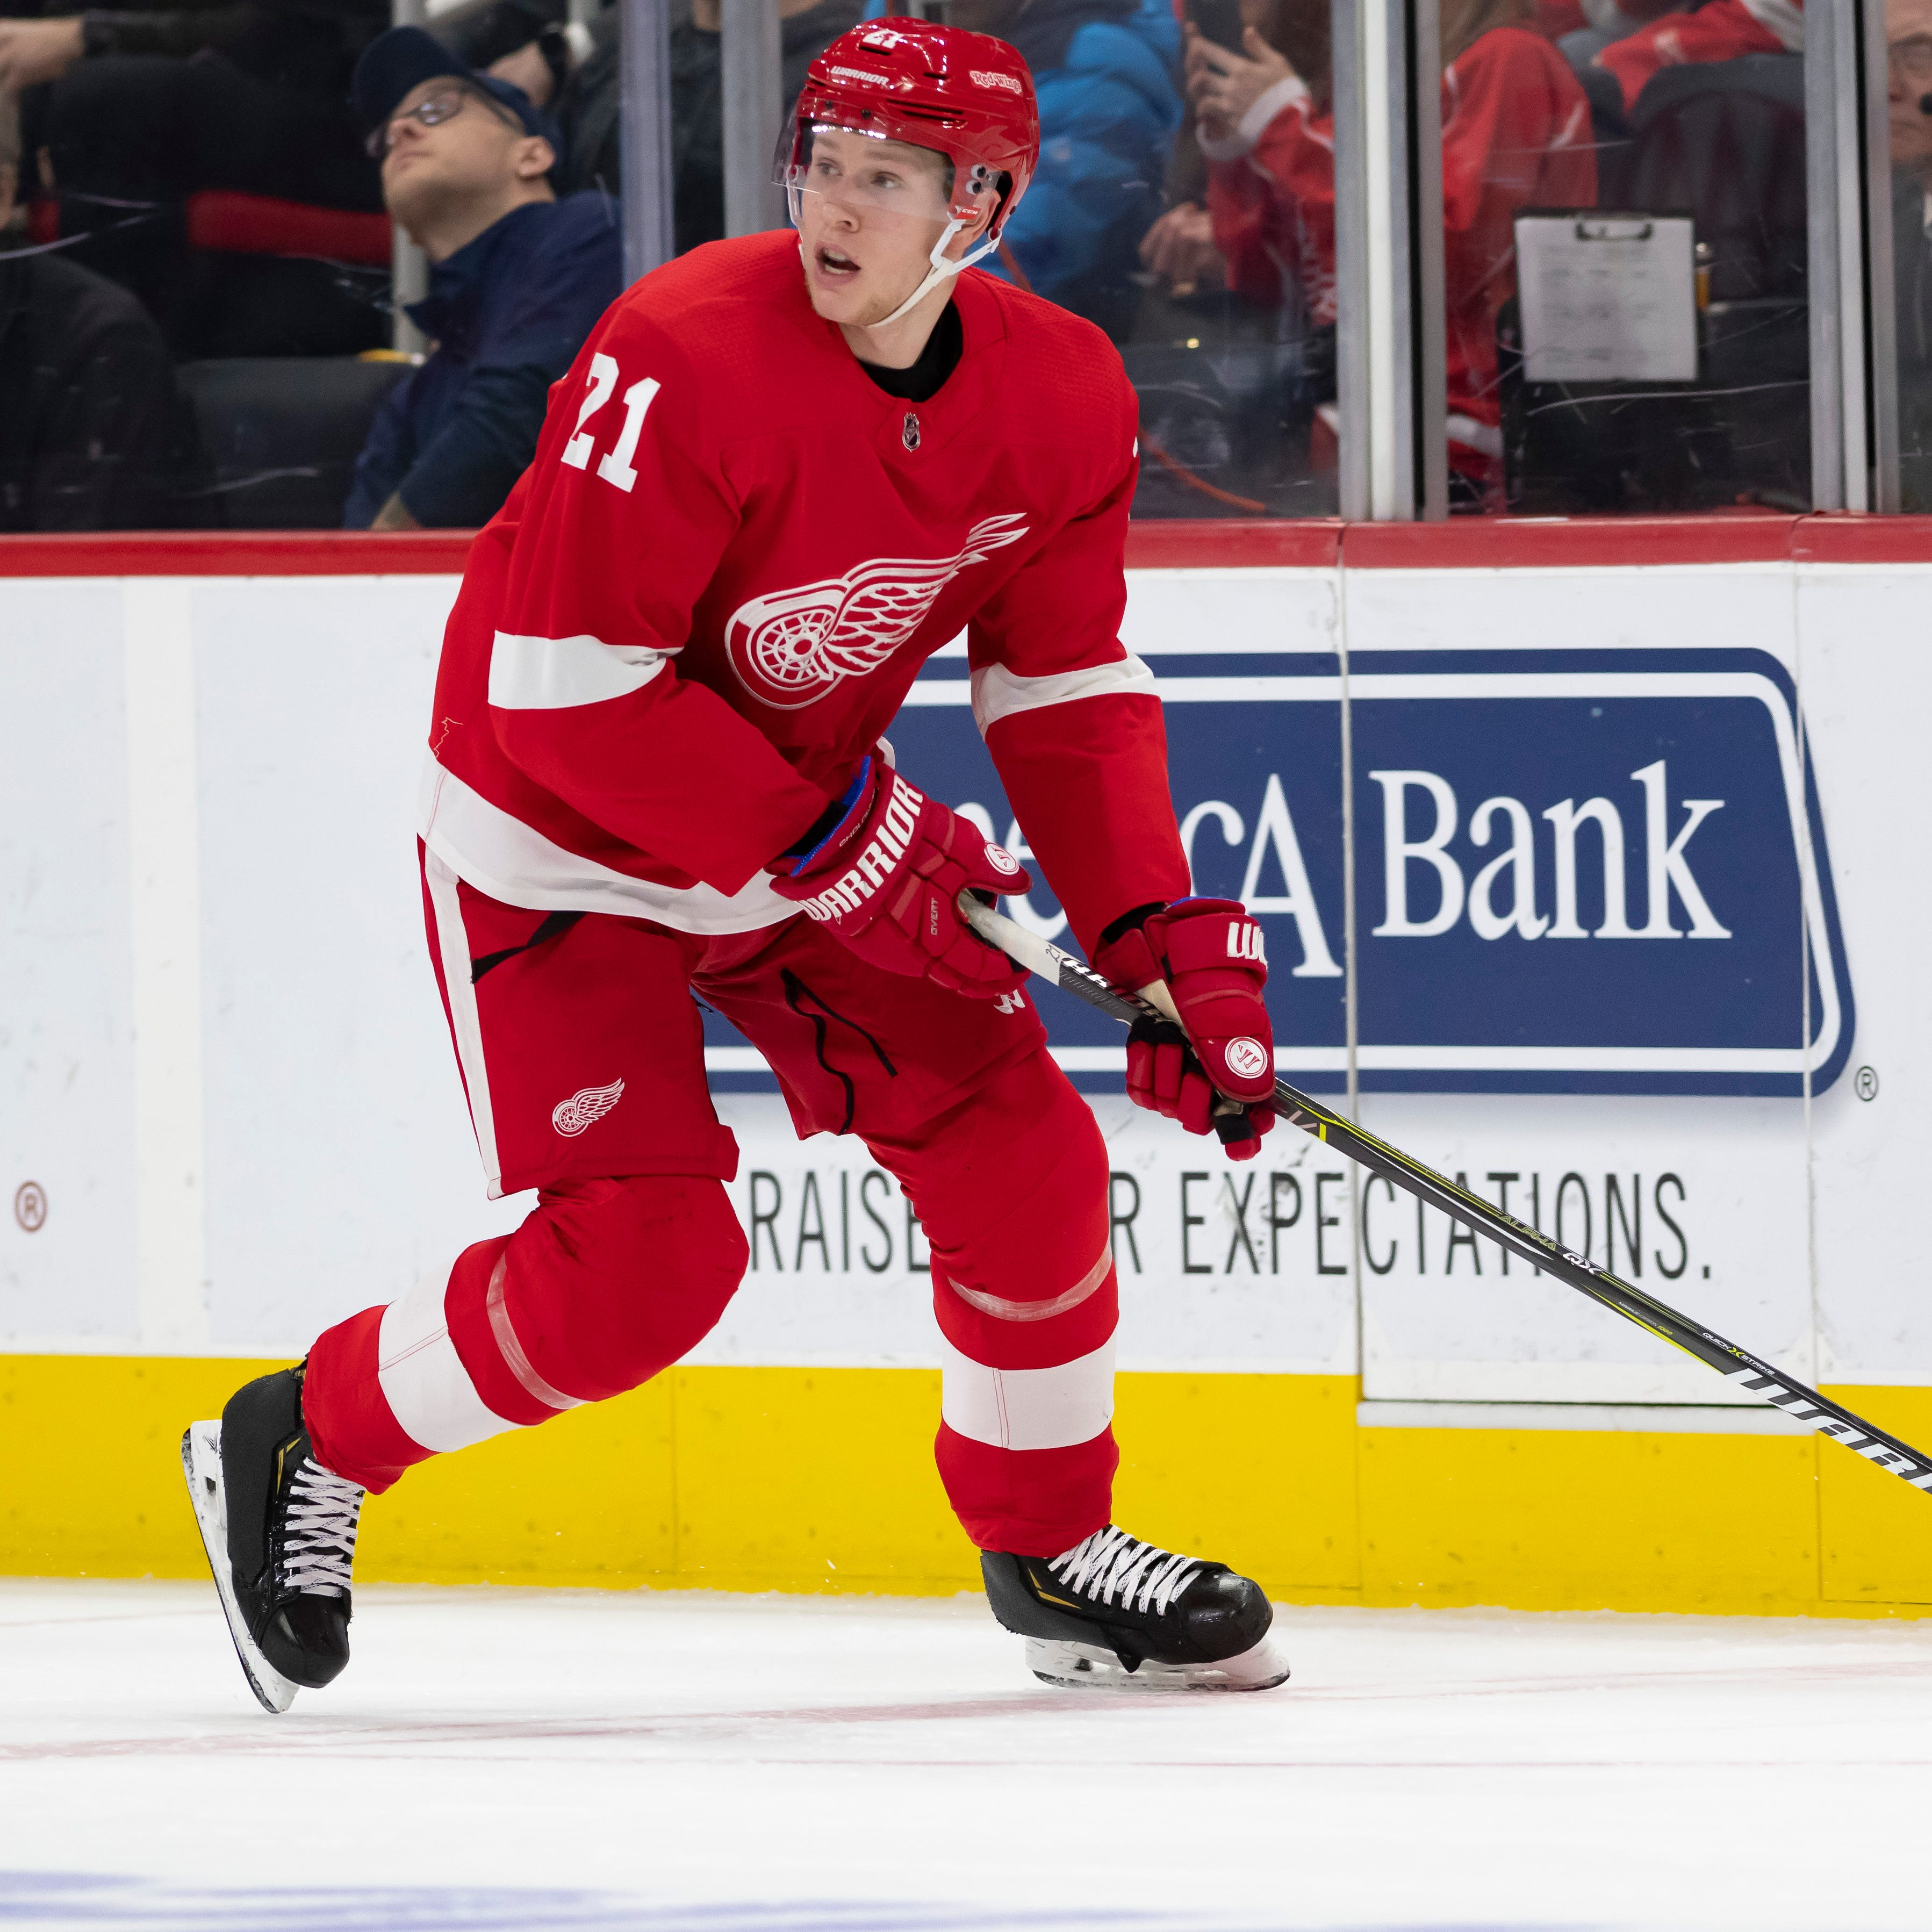 Dennis Cholowski overcomes demotion as Red Wings take big-picture approach